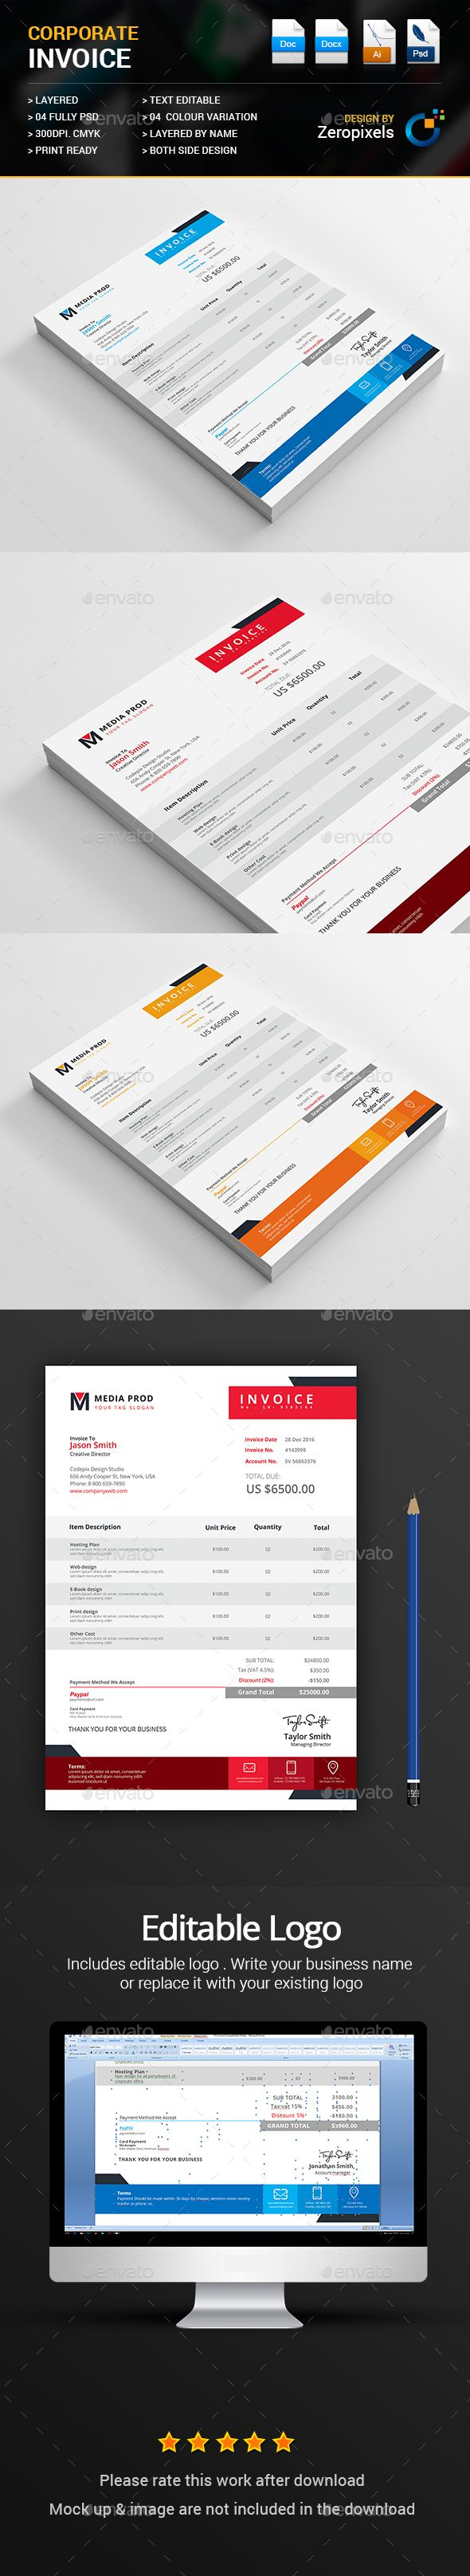 best 25+ invoice format ideas on pinterest | invoice template, Invoice templates